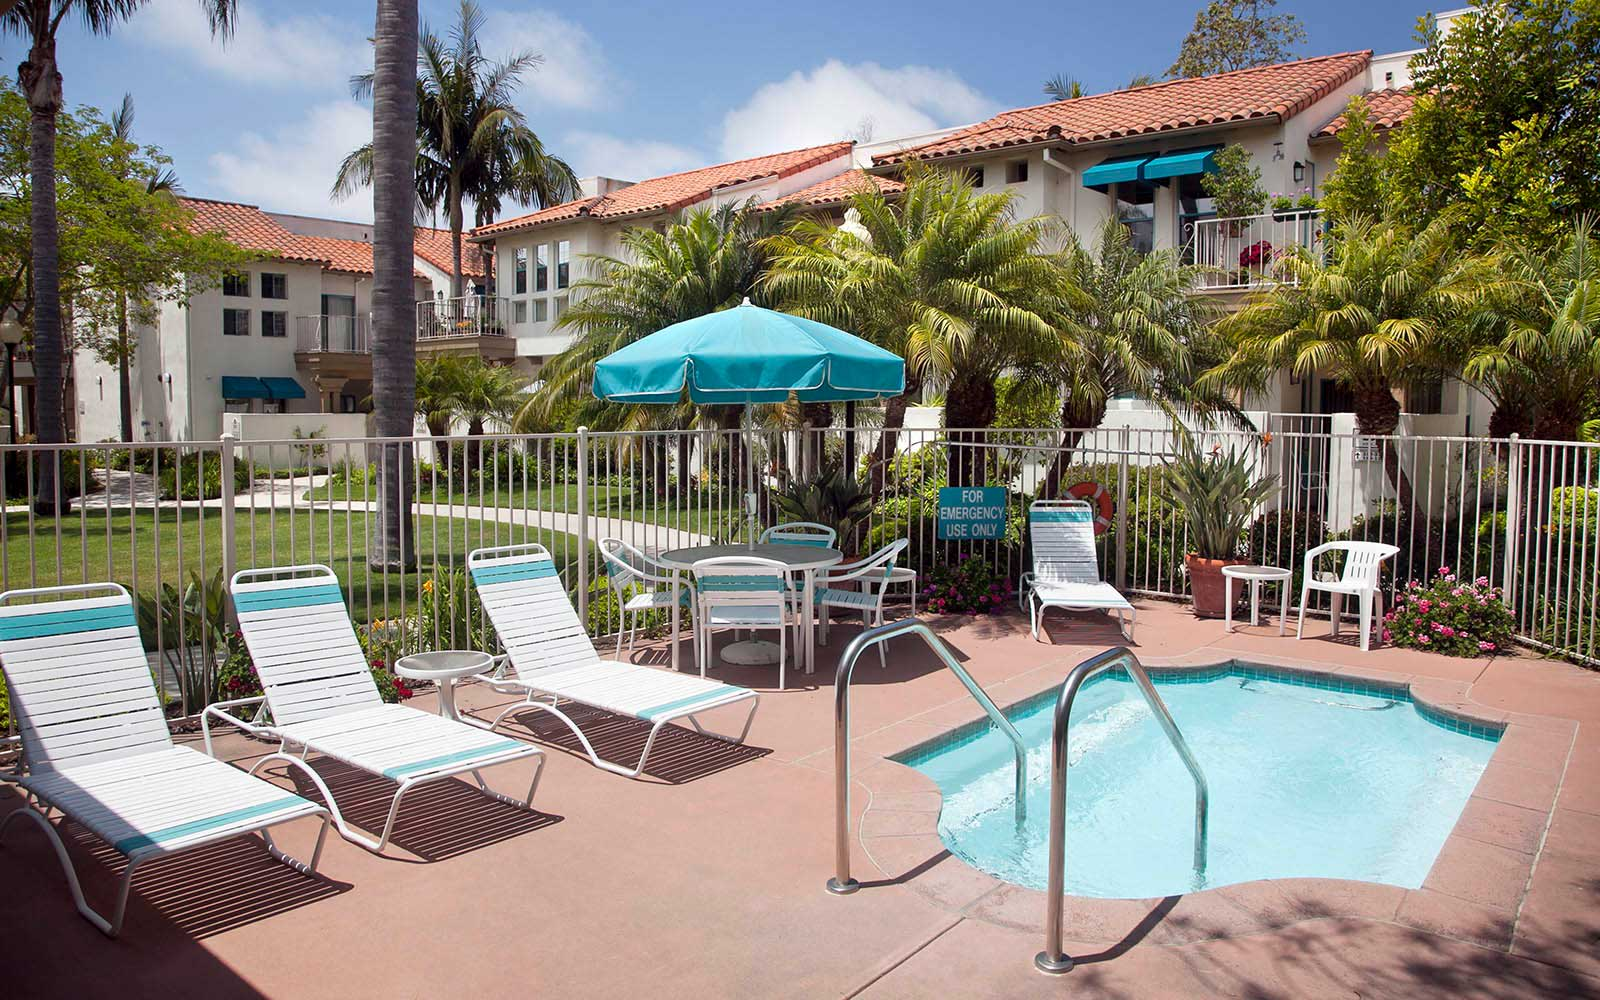 Resort Style Sundeck With Hot Tub at Rancho Franciscan Senior Apartments in Santa Barbara, CA